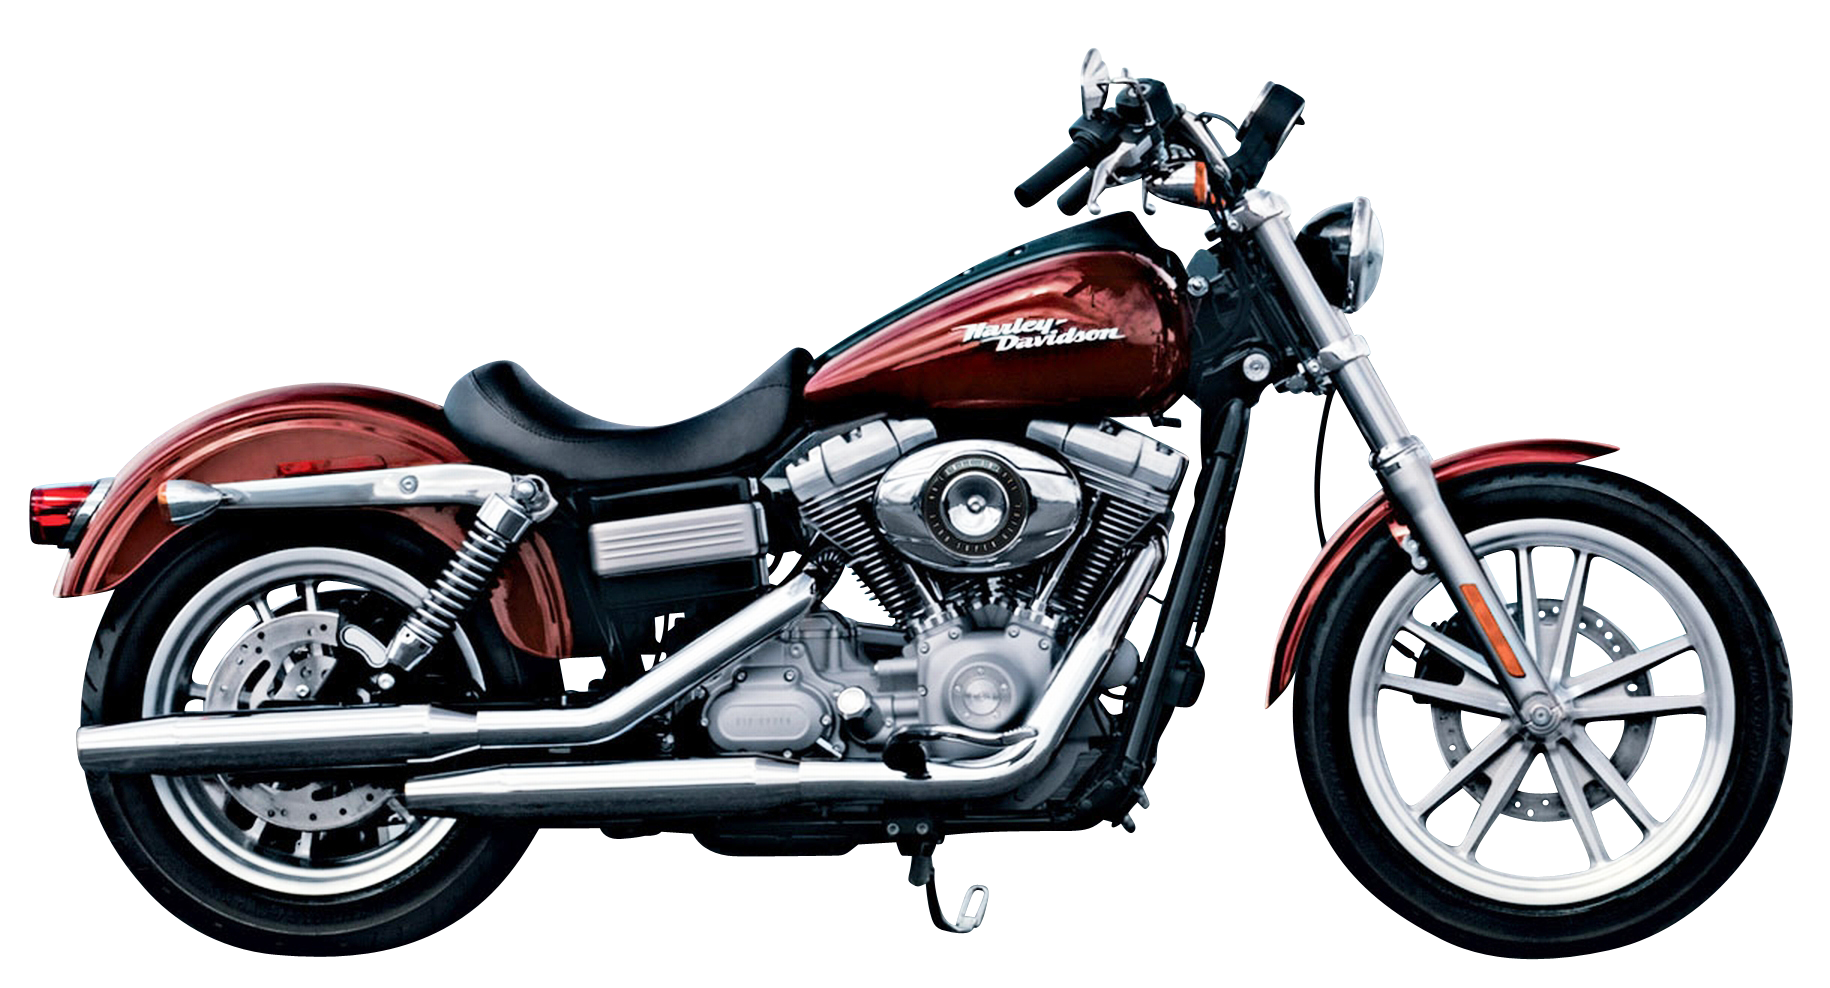 Motorcycle clipart motorbike. Harley davidson brown bike